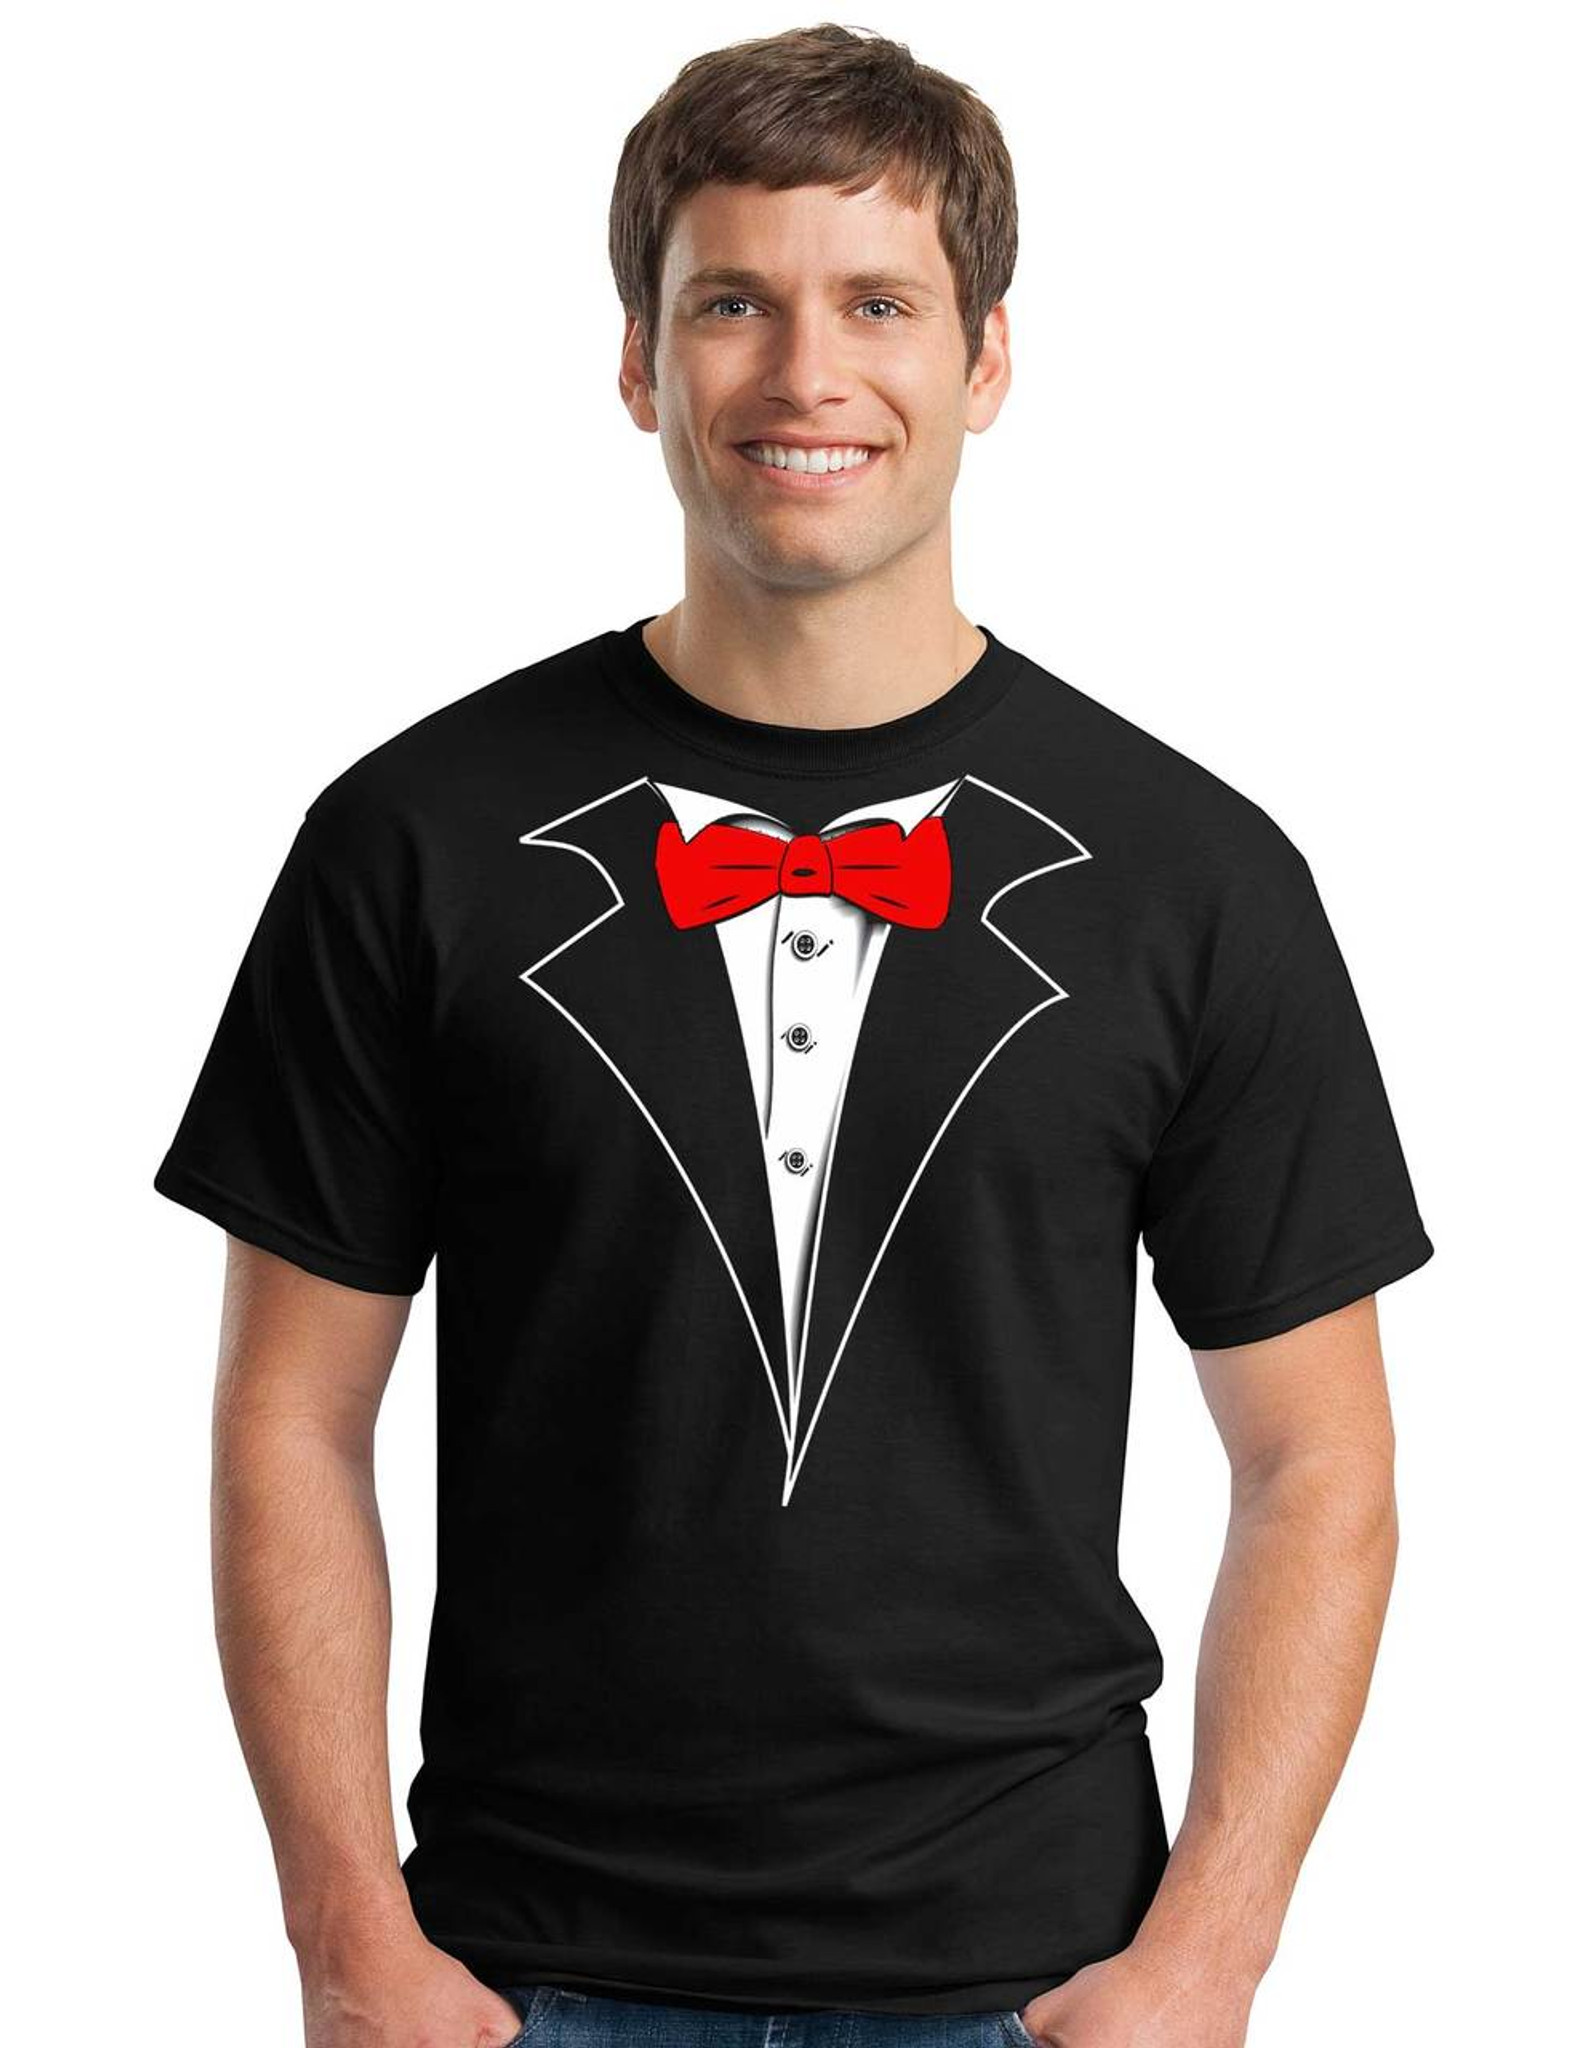 Tuxedo T Shirt With Red Bow Tie On Black No Carnation